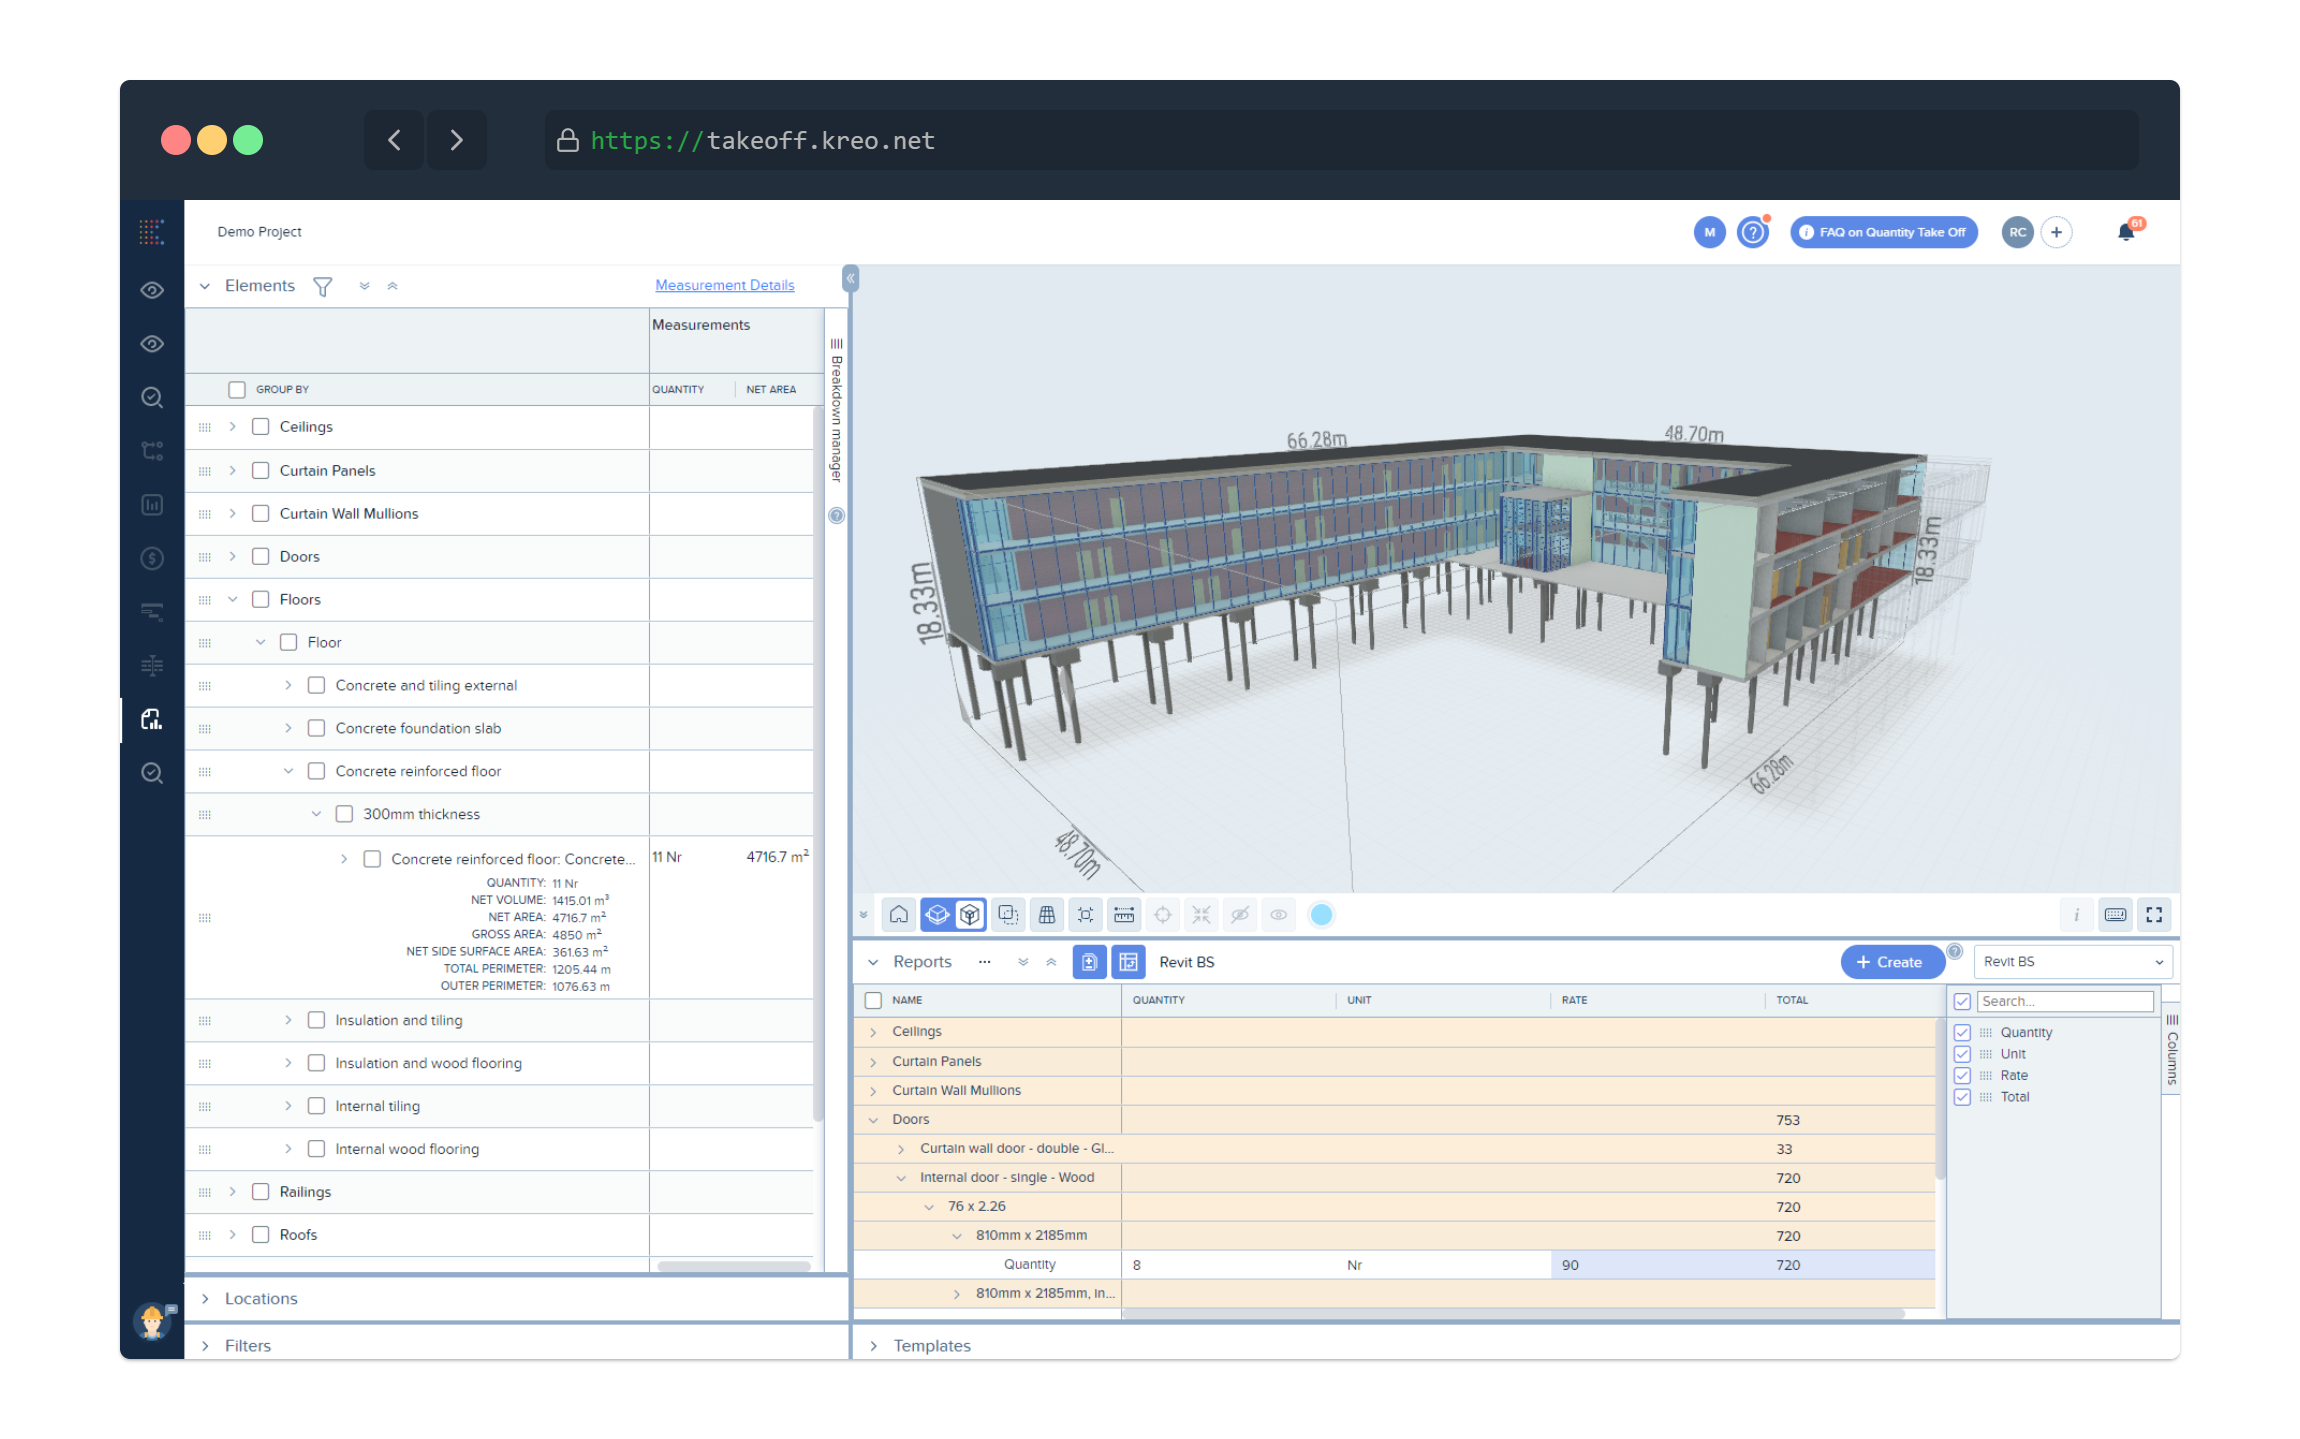 Leading the way digitally with Kreo's construction software - O'Keefe's Story